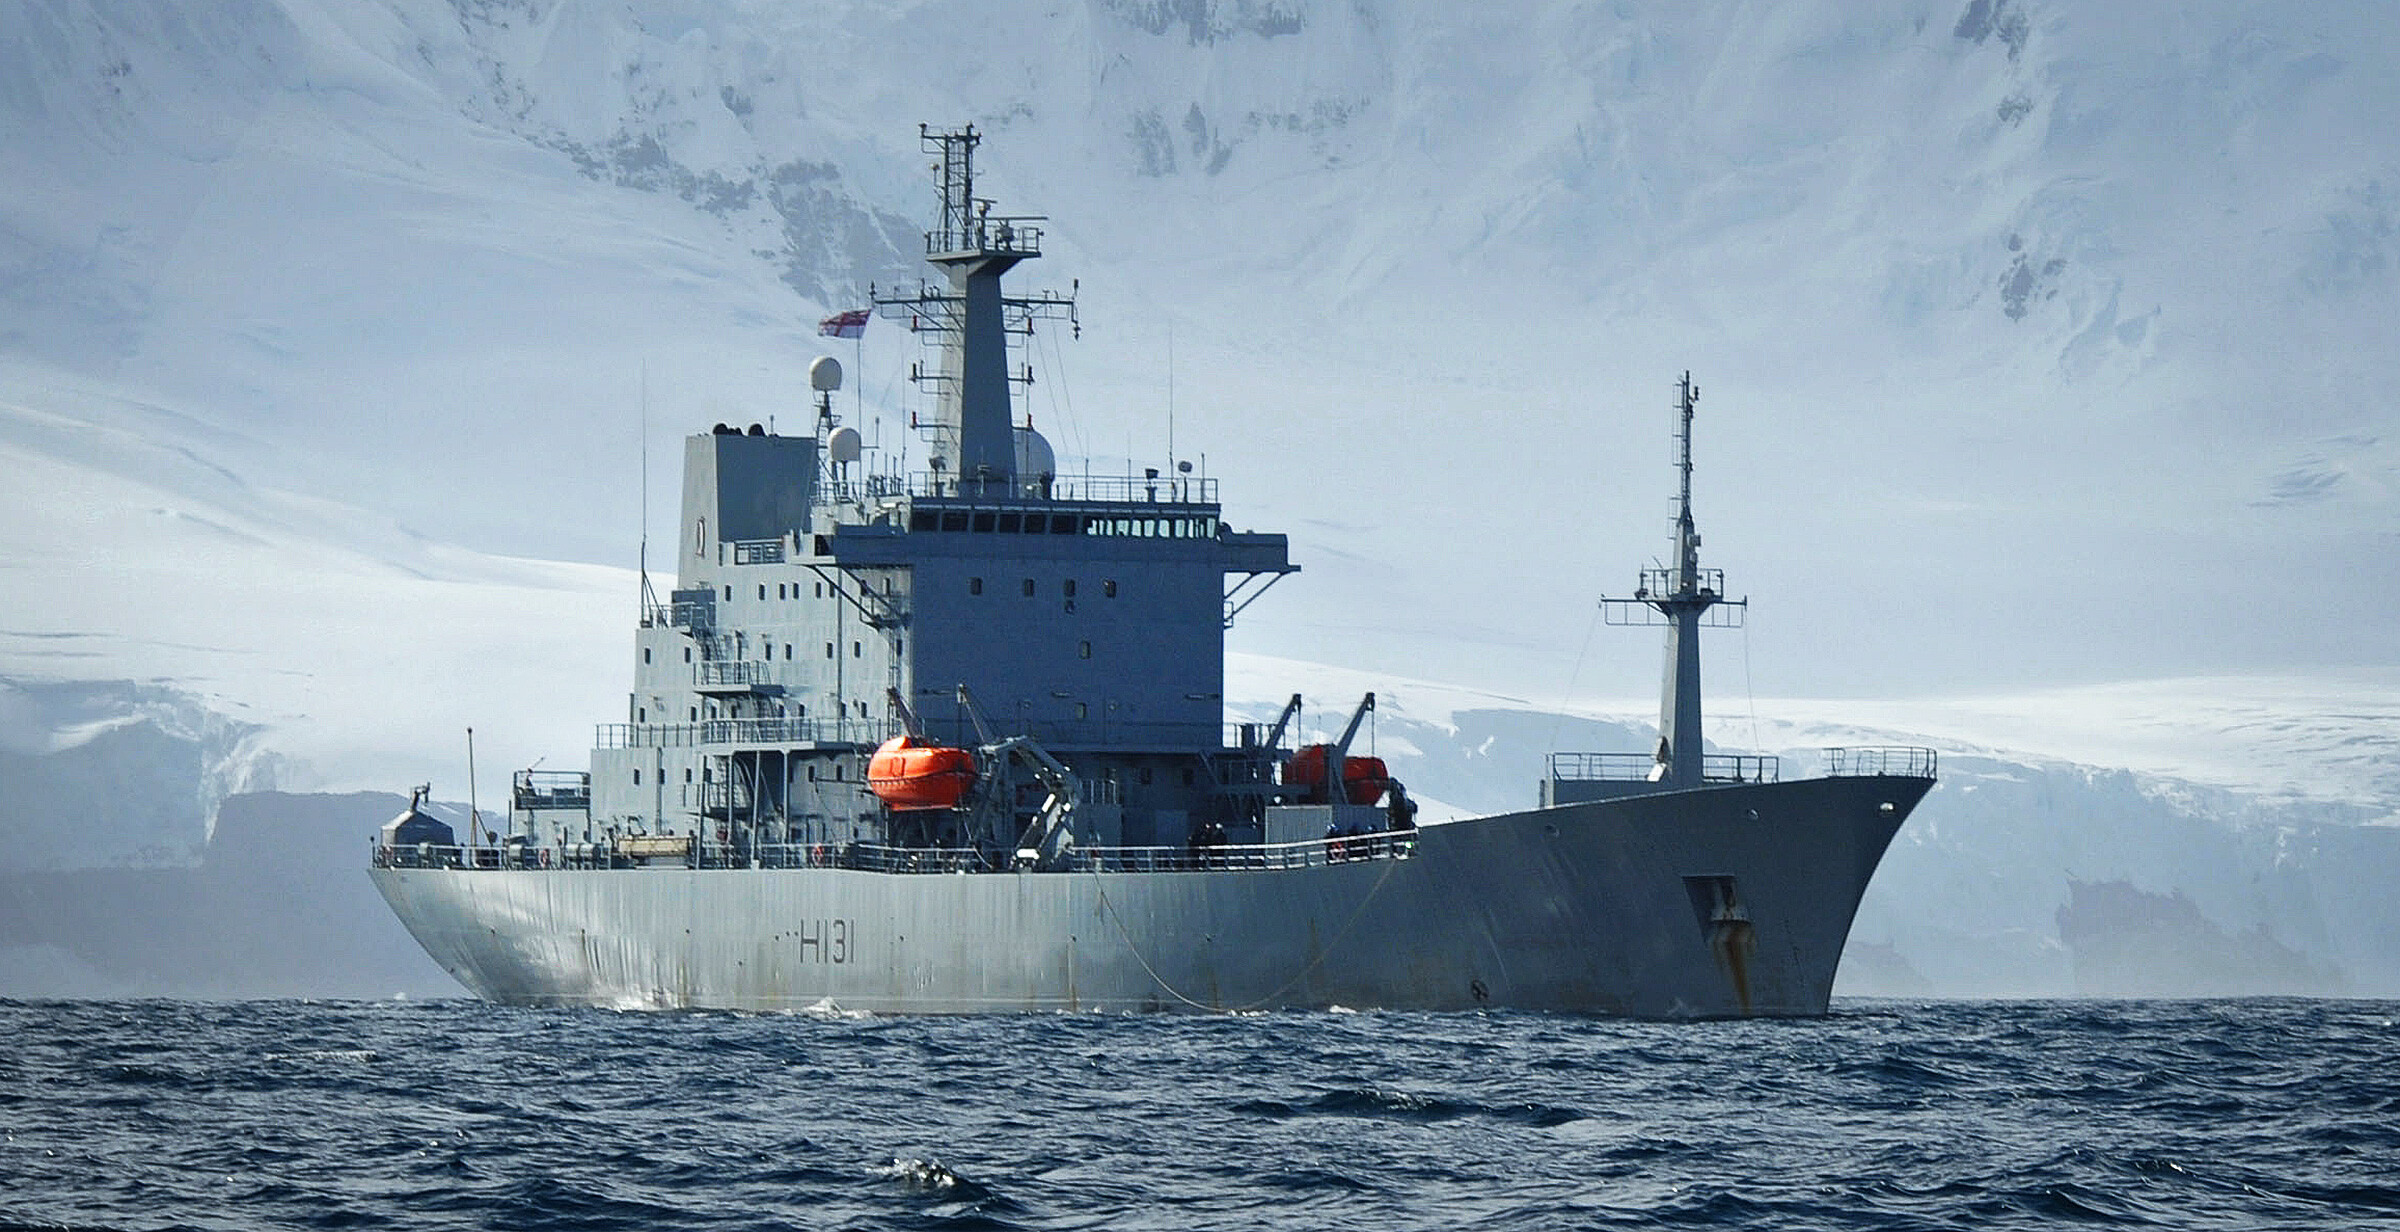 In focus: HMS Scott, the Royal Navy's ocean survey vessel